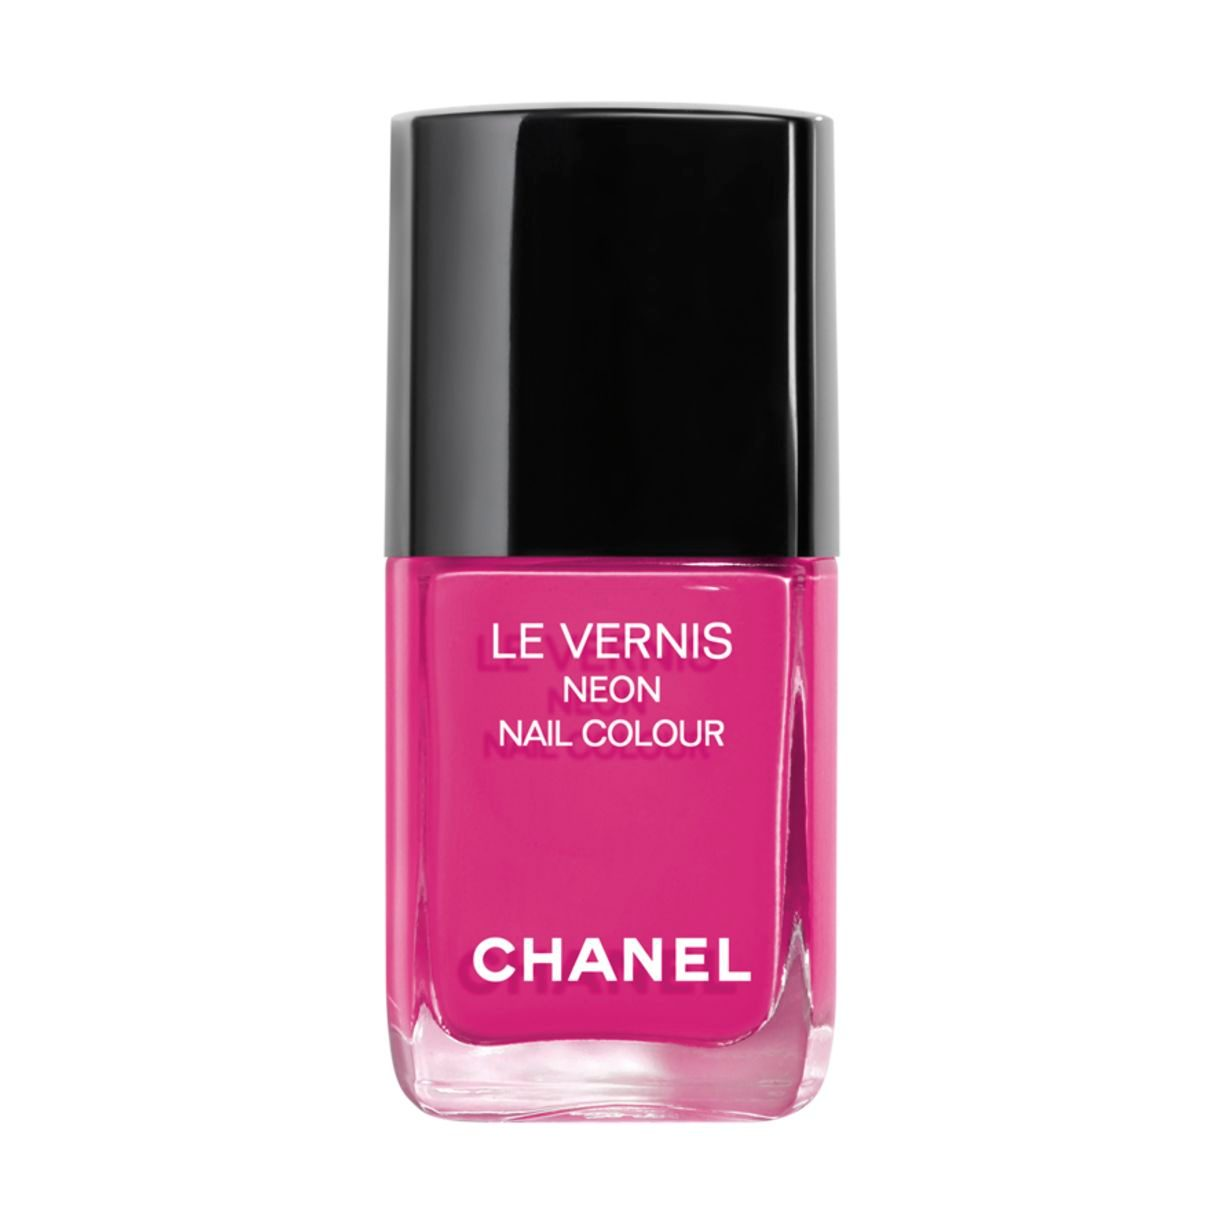 LE VERNIS NEON NAIL COLOUR 甲油 (螢光色系) 648 - TECHNO BLOOM